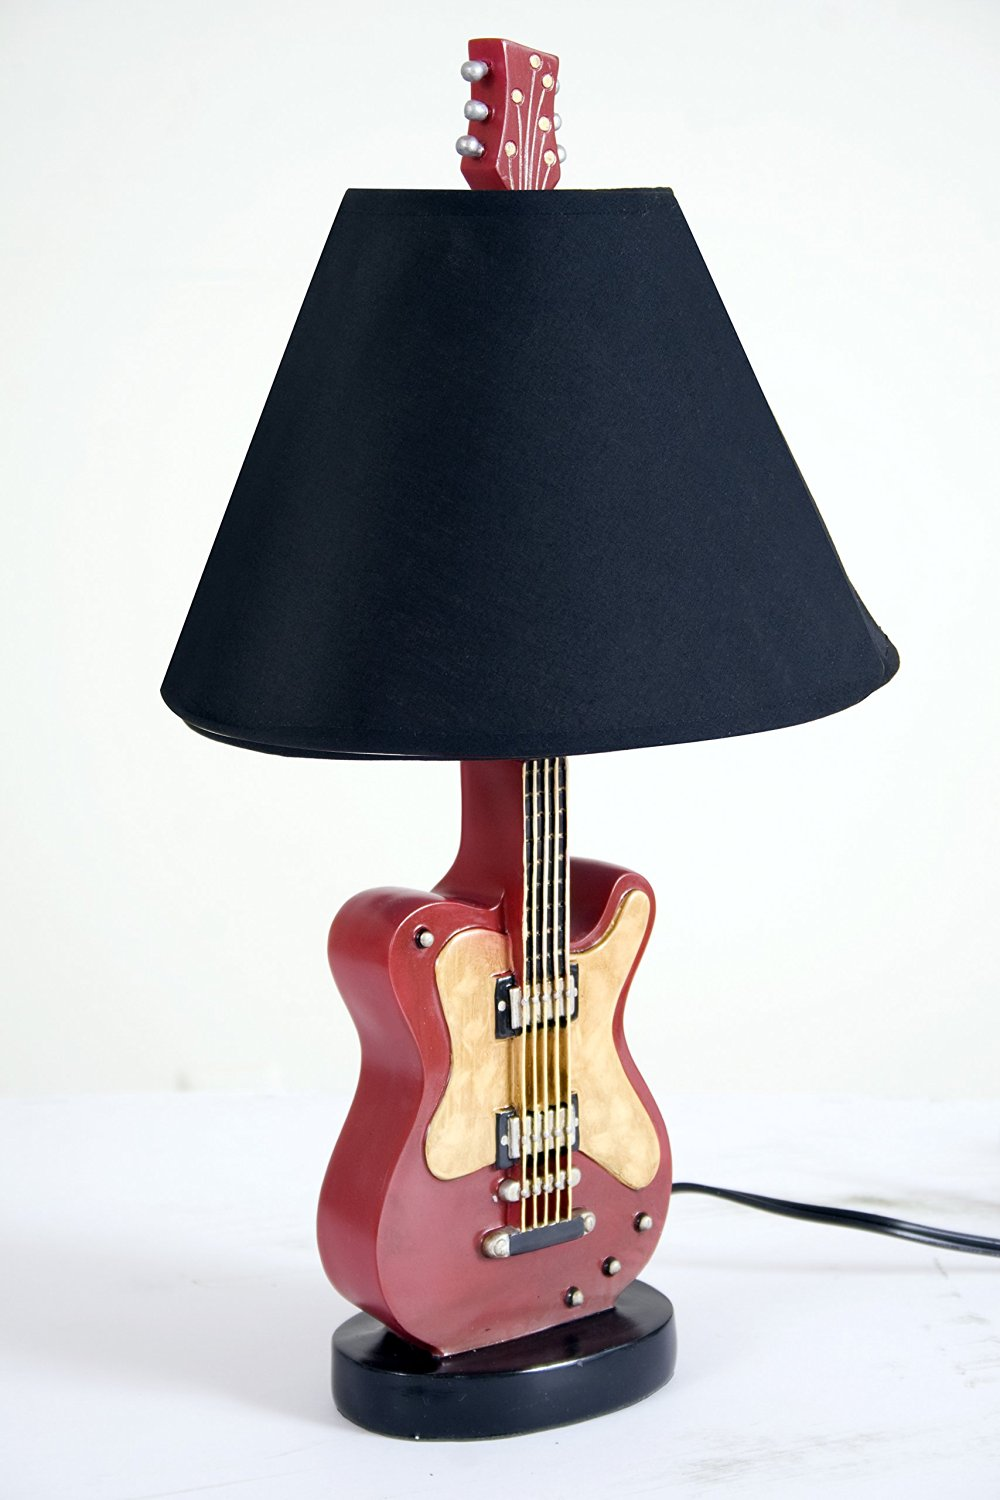 Cheap guitar lamp find guitar lamp deals on line at alibaba get quotations blysh ceramic table top lamp guitar design beautiful decoration idea for home living room aloadofball Images